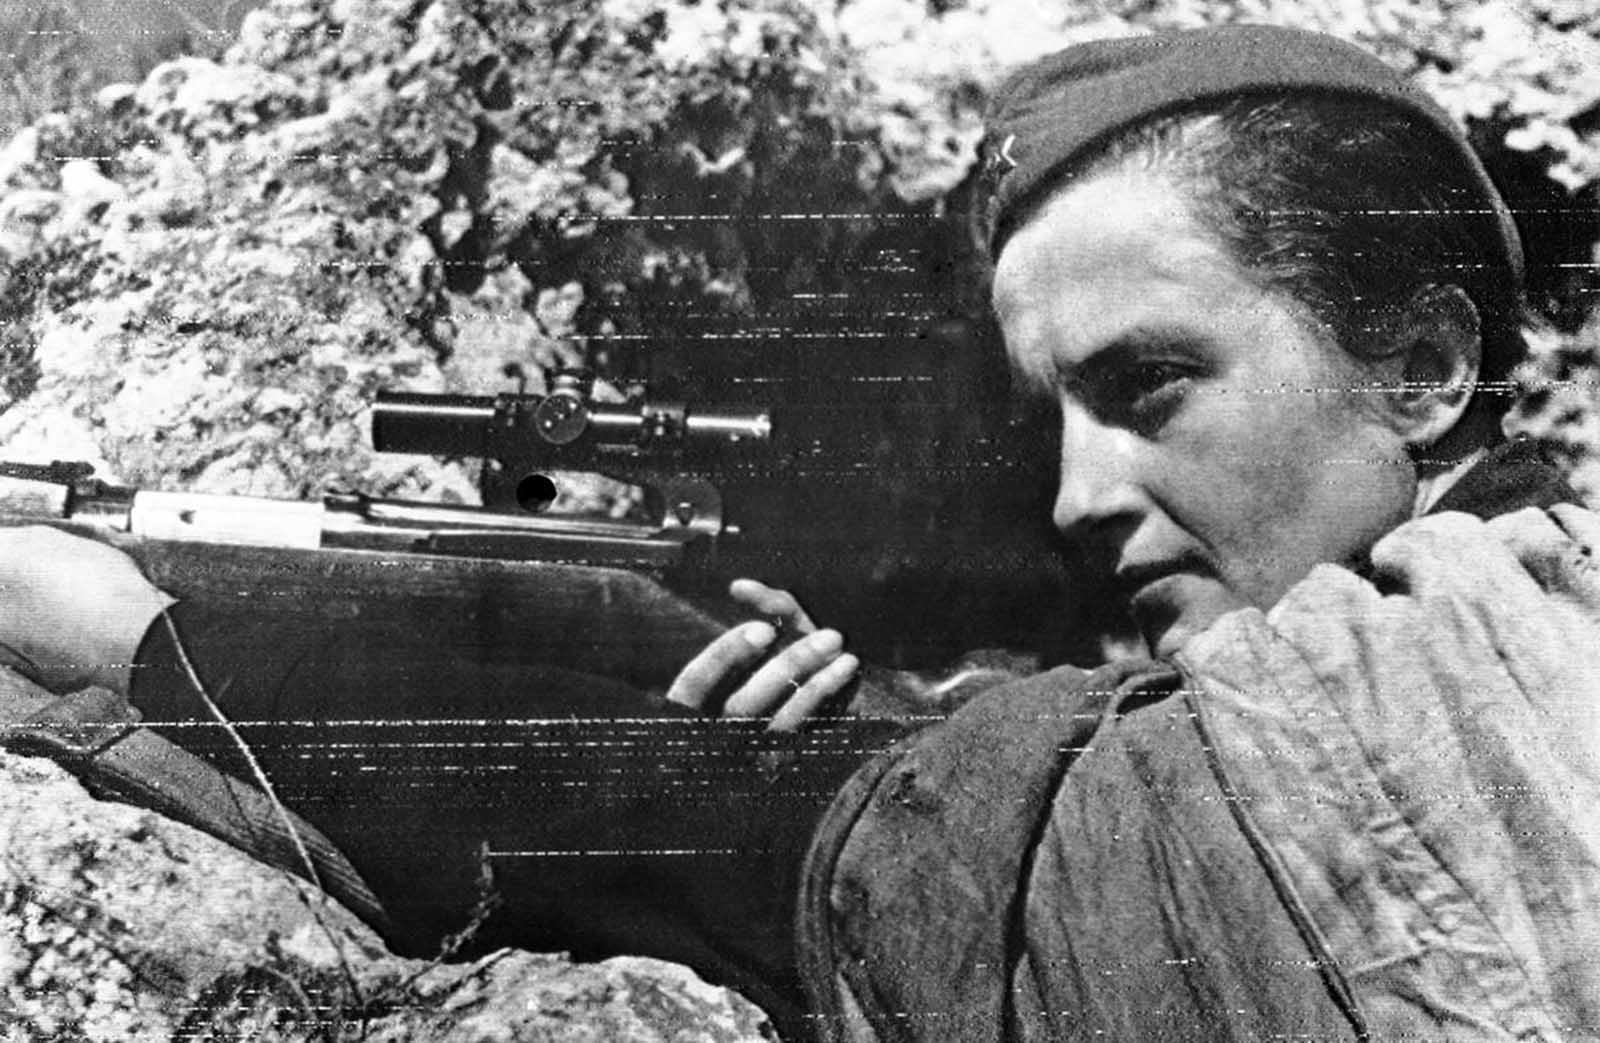 Symbolic of the defense of Sevastopol, Crimea, is this Russian girl sniper, Lyudmila Pavlichenko, who, by the end of the war, had killed a confirmed 309 Germans -- the most successful female sniper in history.